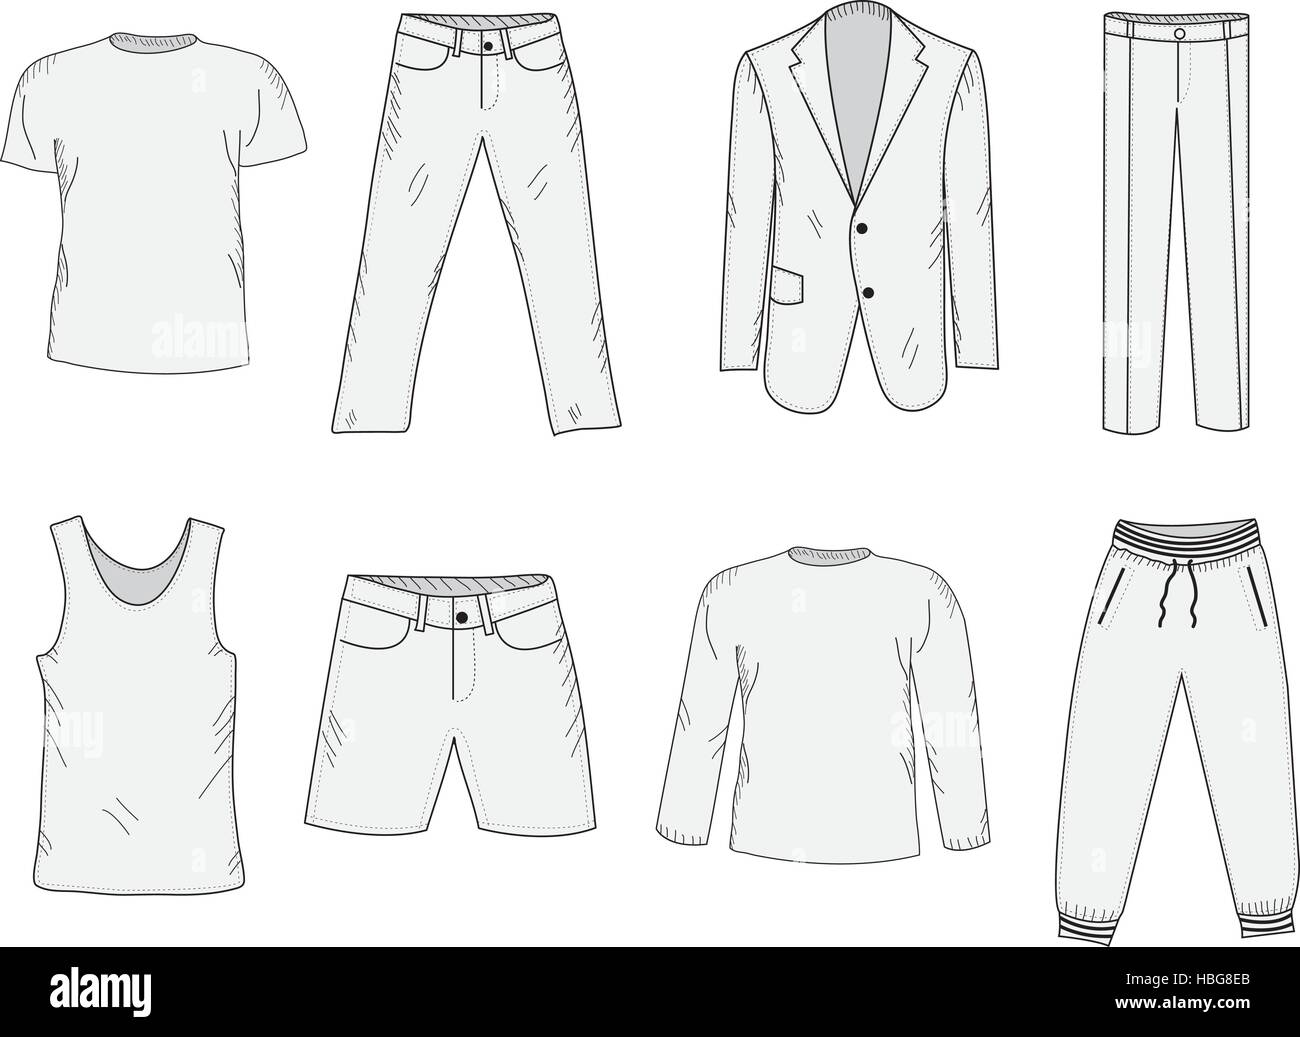 clothing set sketch mens clothes handdrawing style